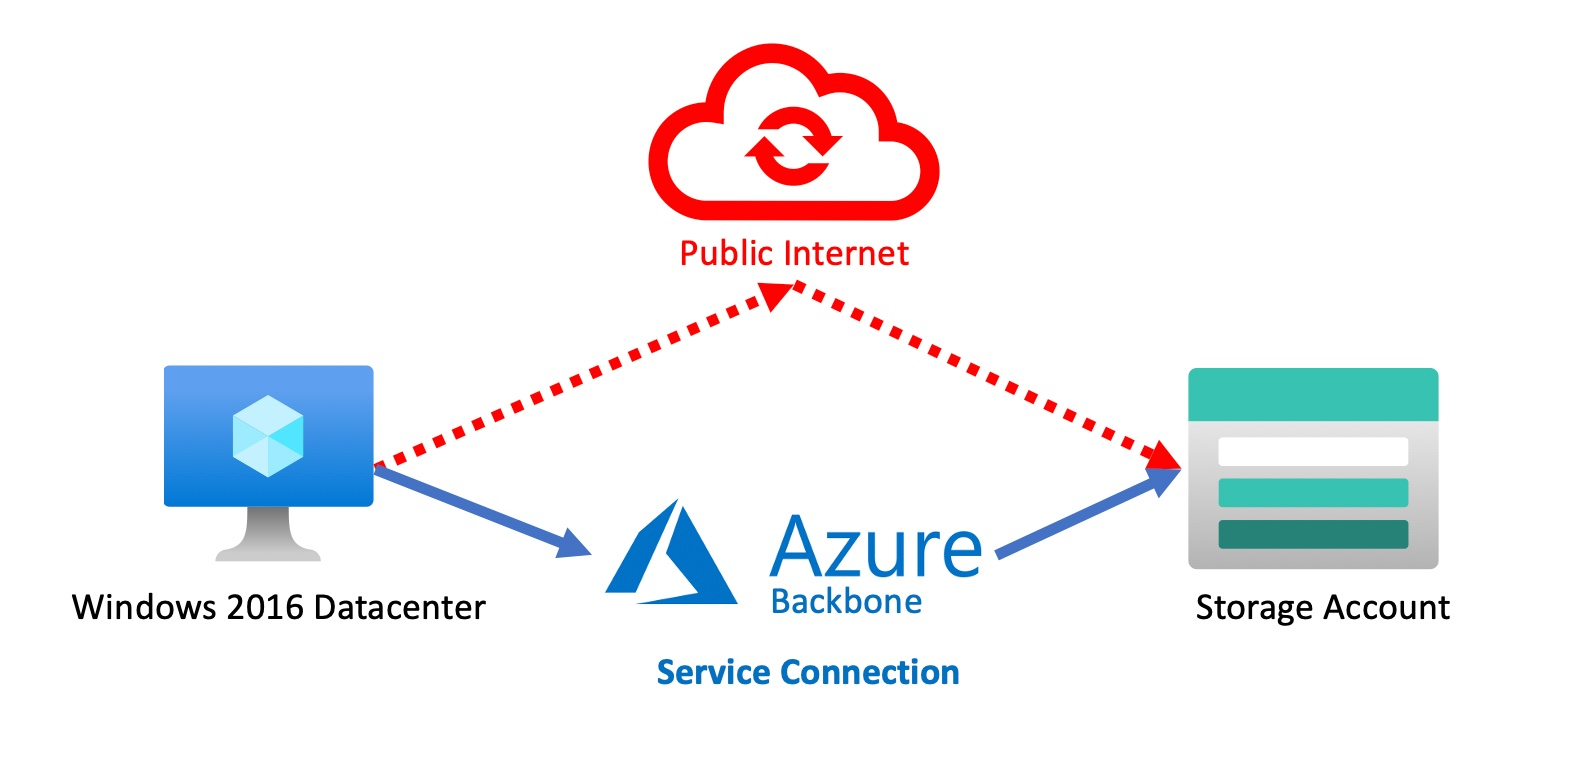 Diagram of Service Endpoints in Azure